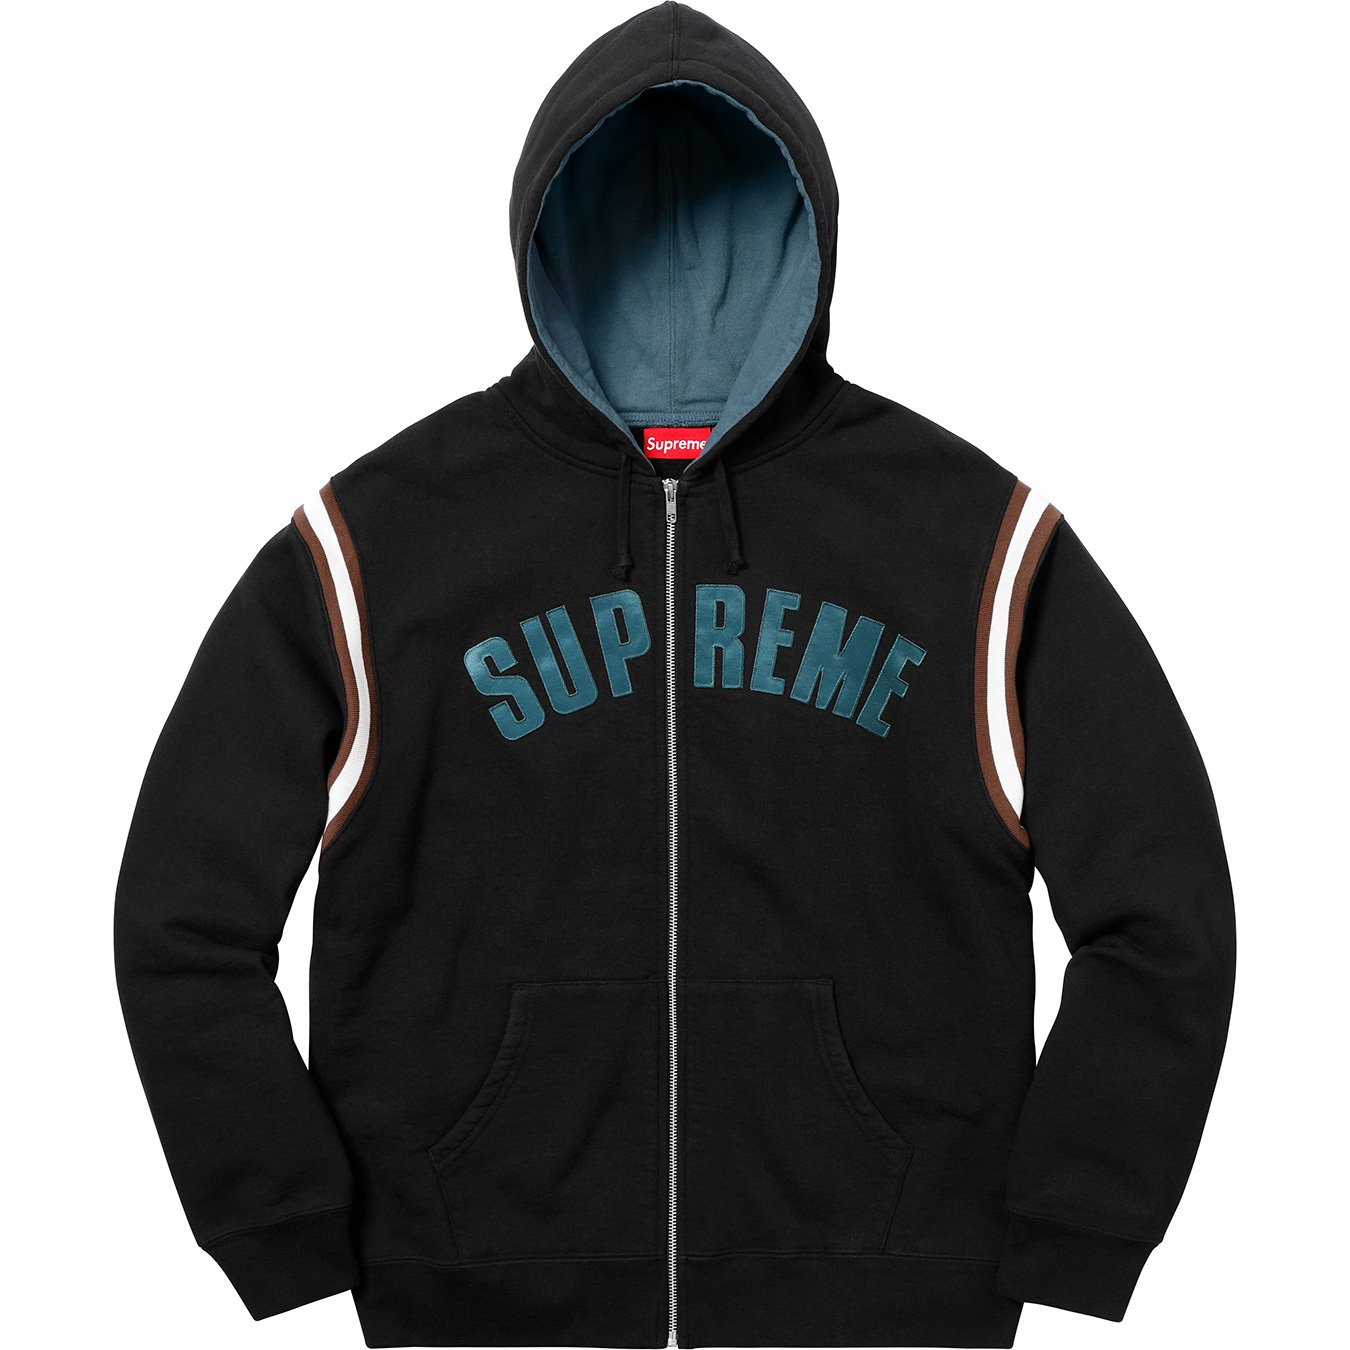 supreme-18ss-spring-summer-jet-sleeve-zip-up-hooded-sweatshirt